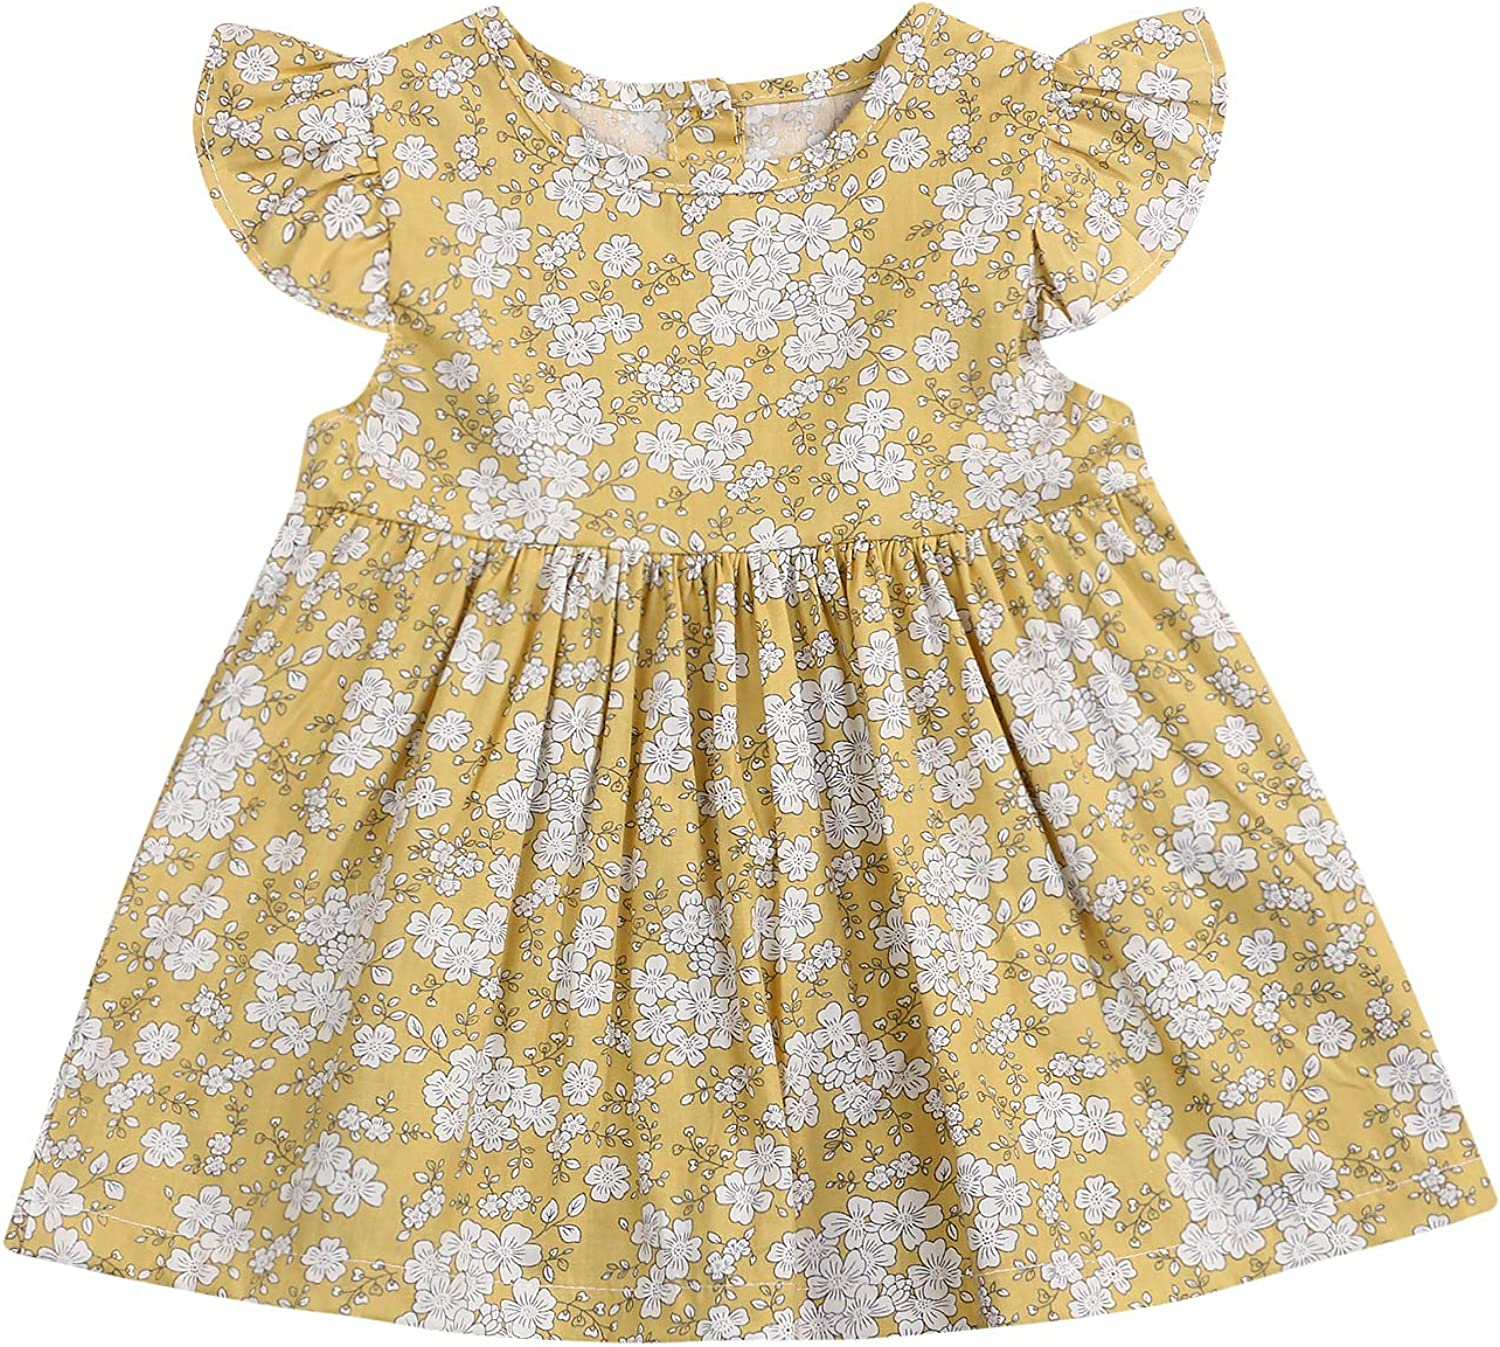 YOUNGER TREE Newborn Infant Baby Girl Summer Dress Flare Sleeves Yellow Floral Princess Dress Sunflower Party Dress